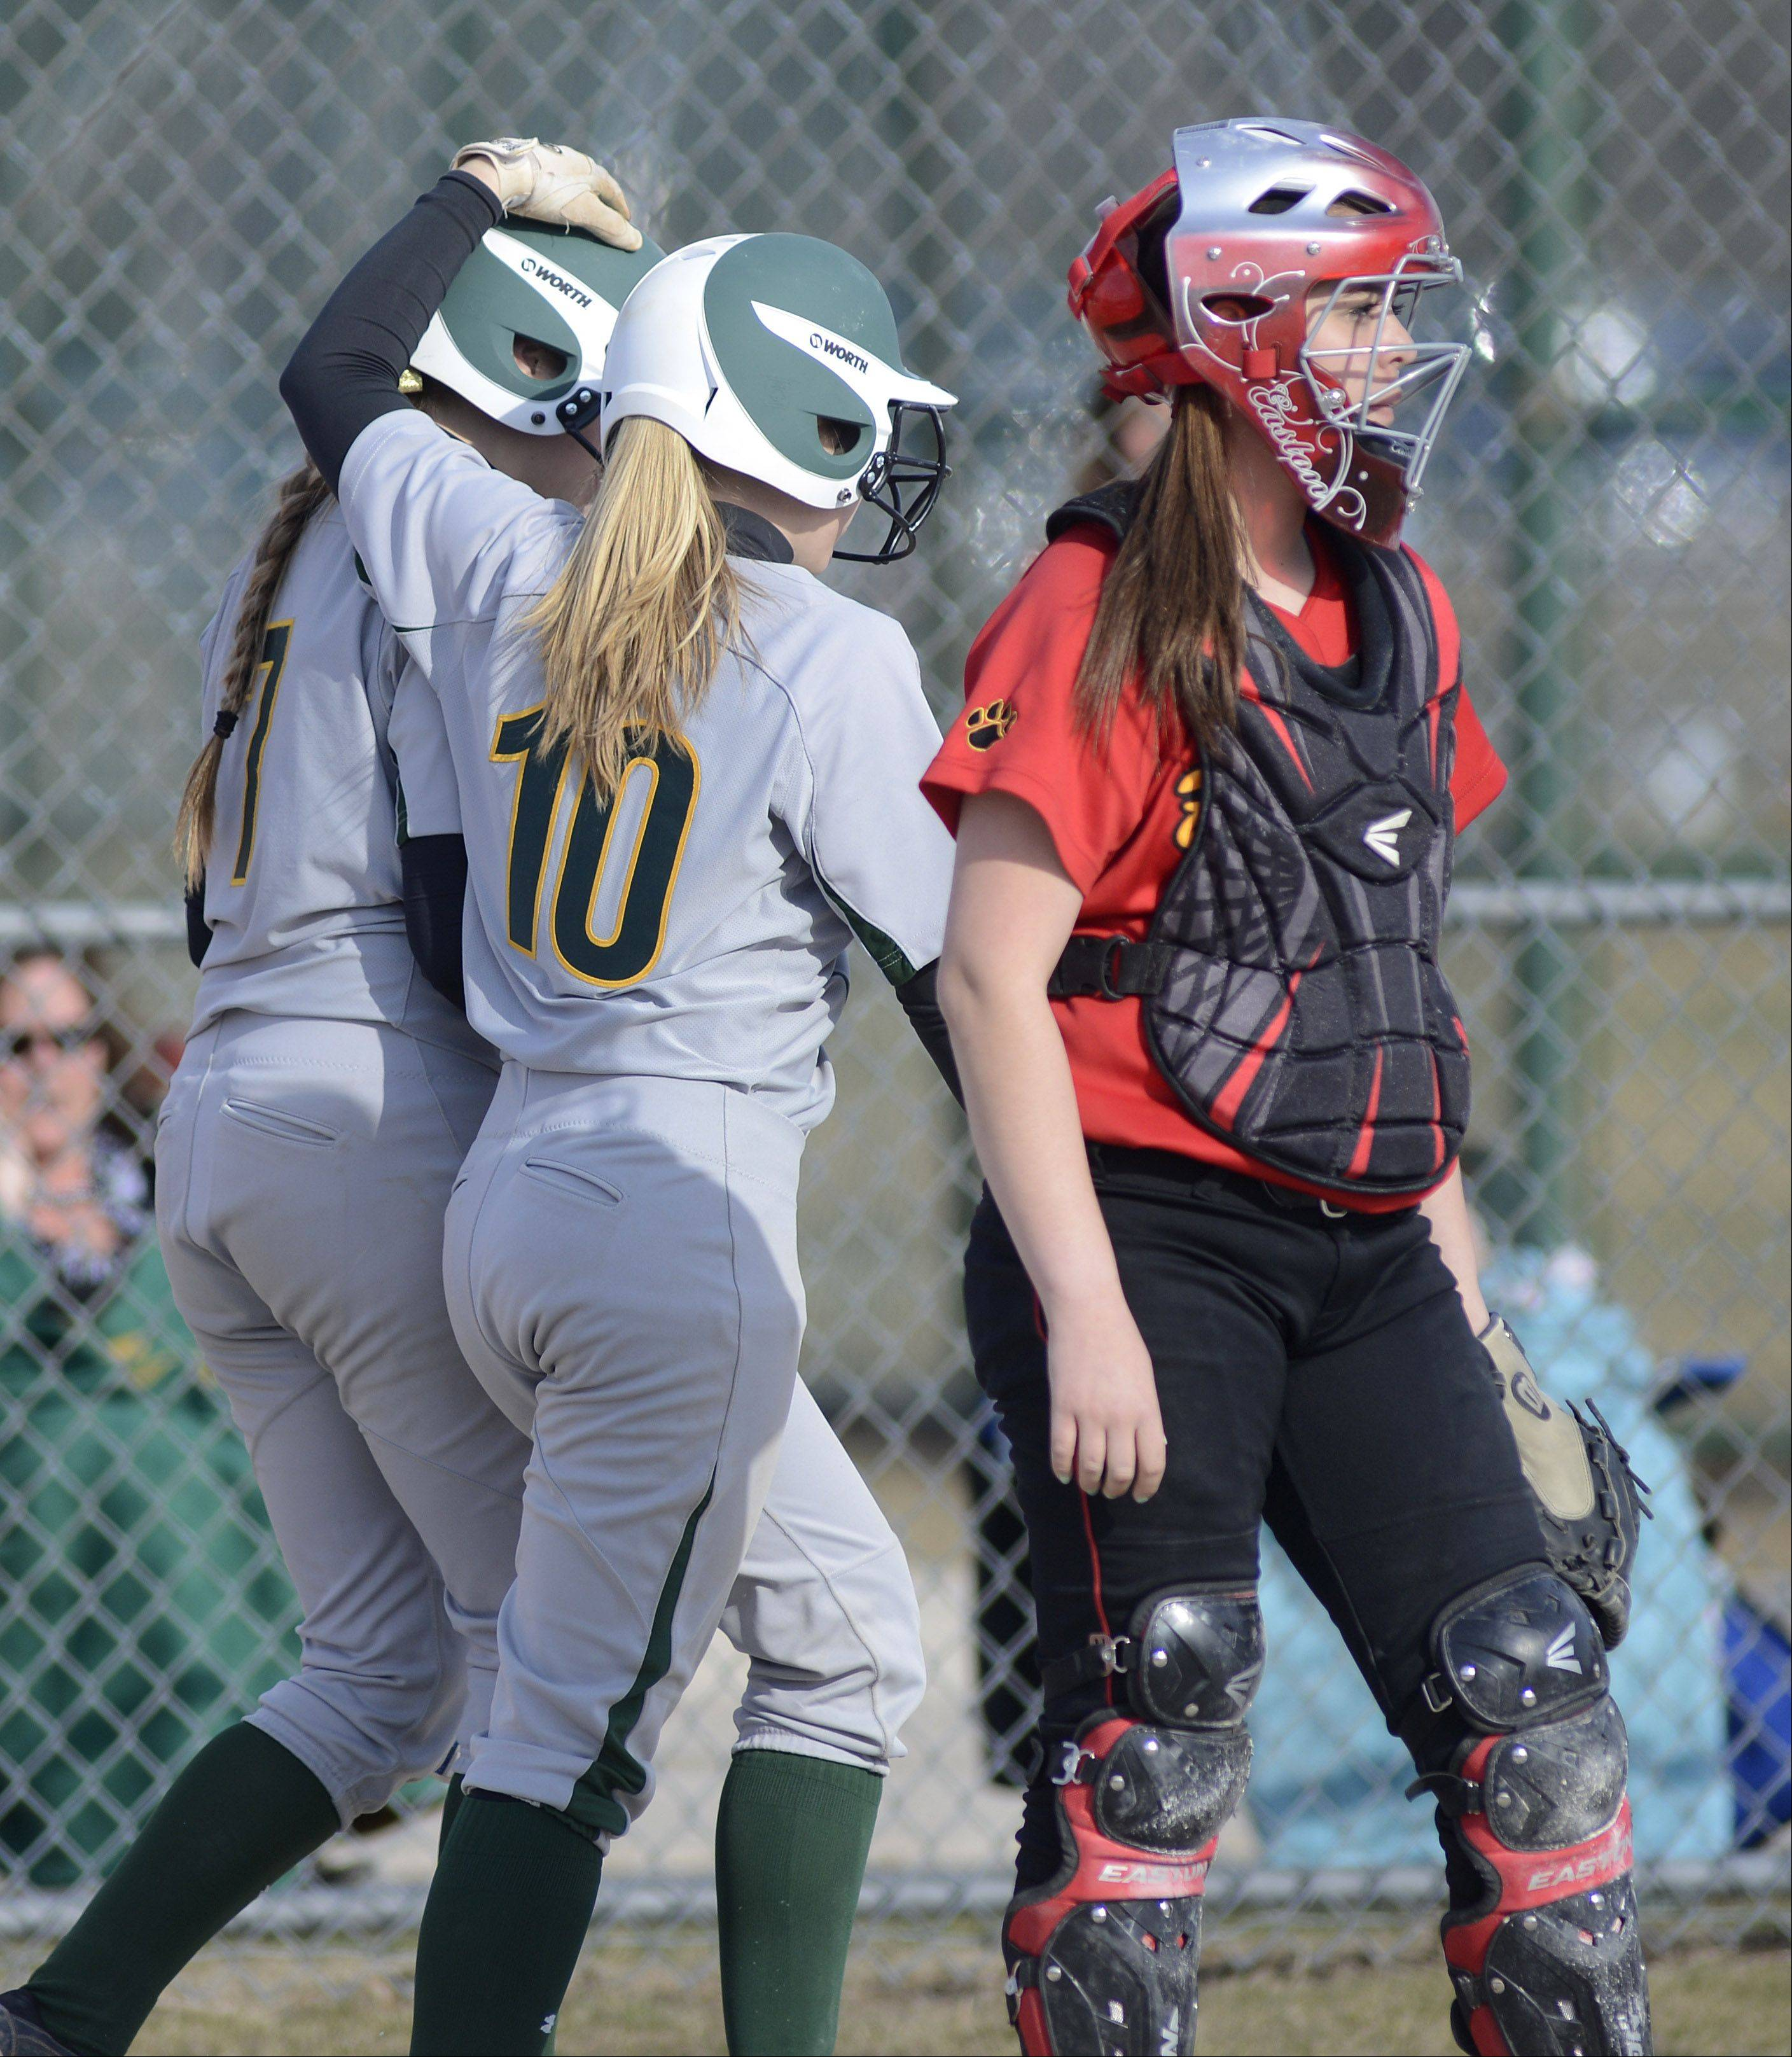 Waubonsie Valley's Shannon Hohman, left, is congratulated by teammate Amanda Lack after scoring a run as they walk back to the dugout past Batavia catcher Brieann Cruz in the second inning on Friday, April 5. 7